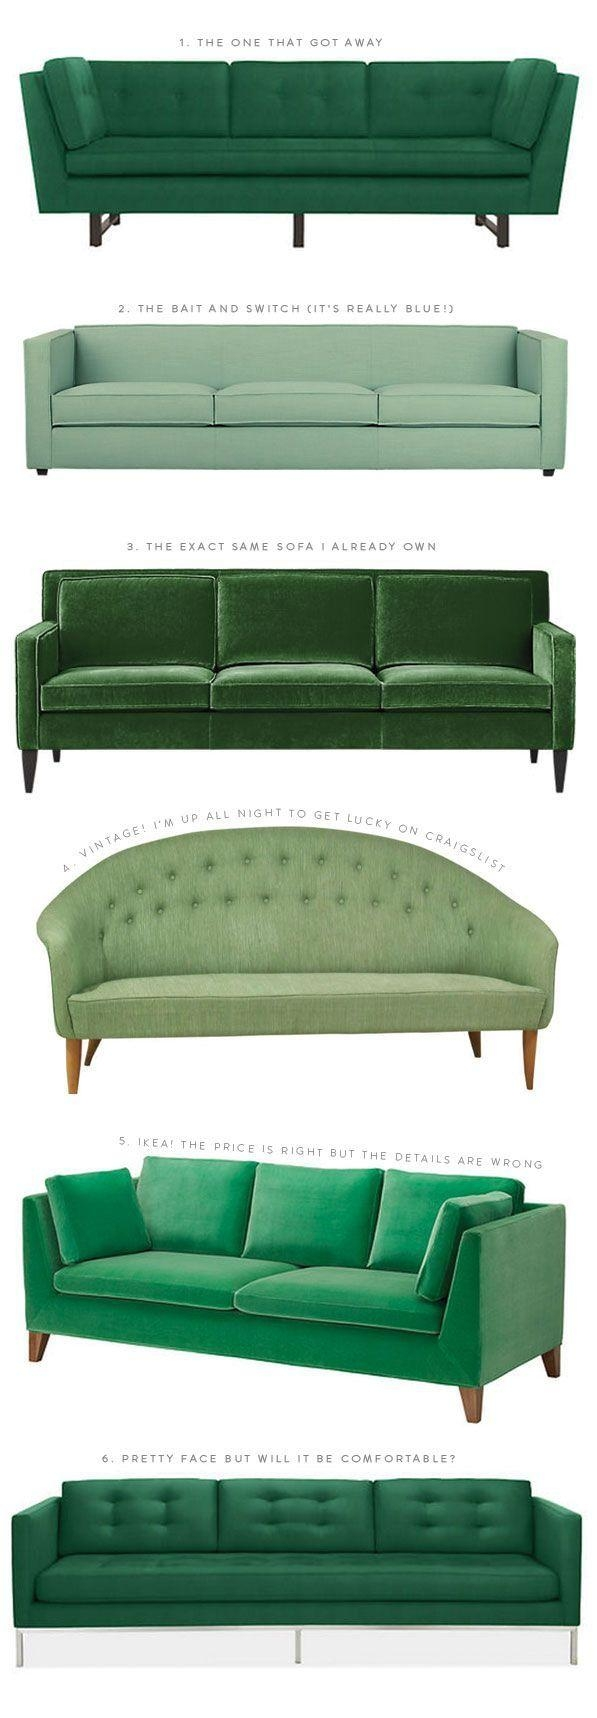 307 Best Sofas & Chairs – Ahhhhh! Images On Pinterest | Sofas Within Chintz Sofas And Chairs (View 12 of 20)